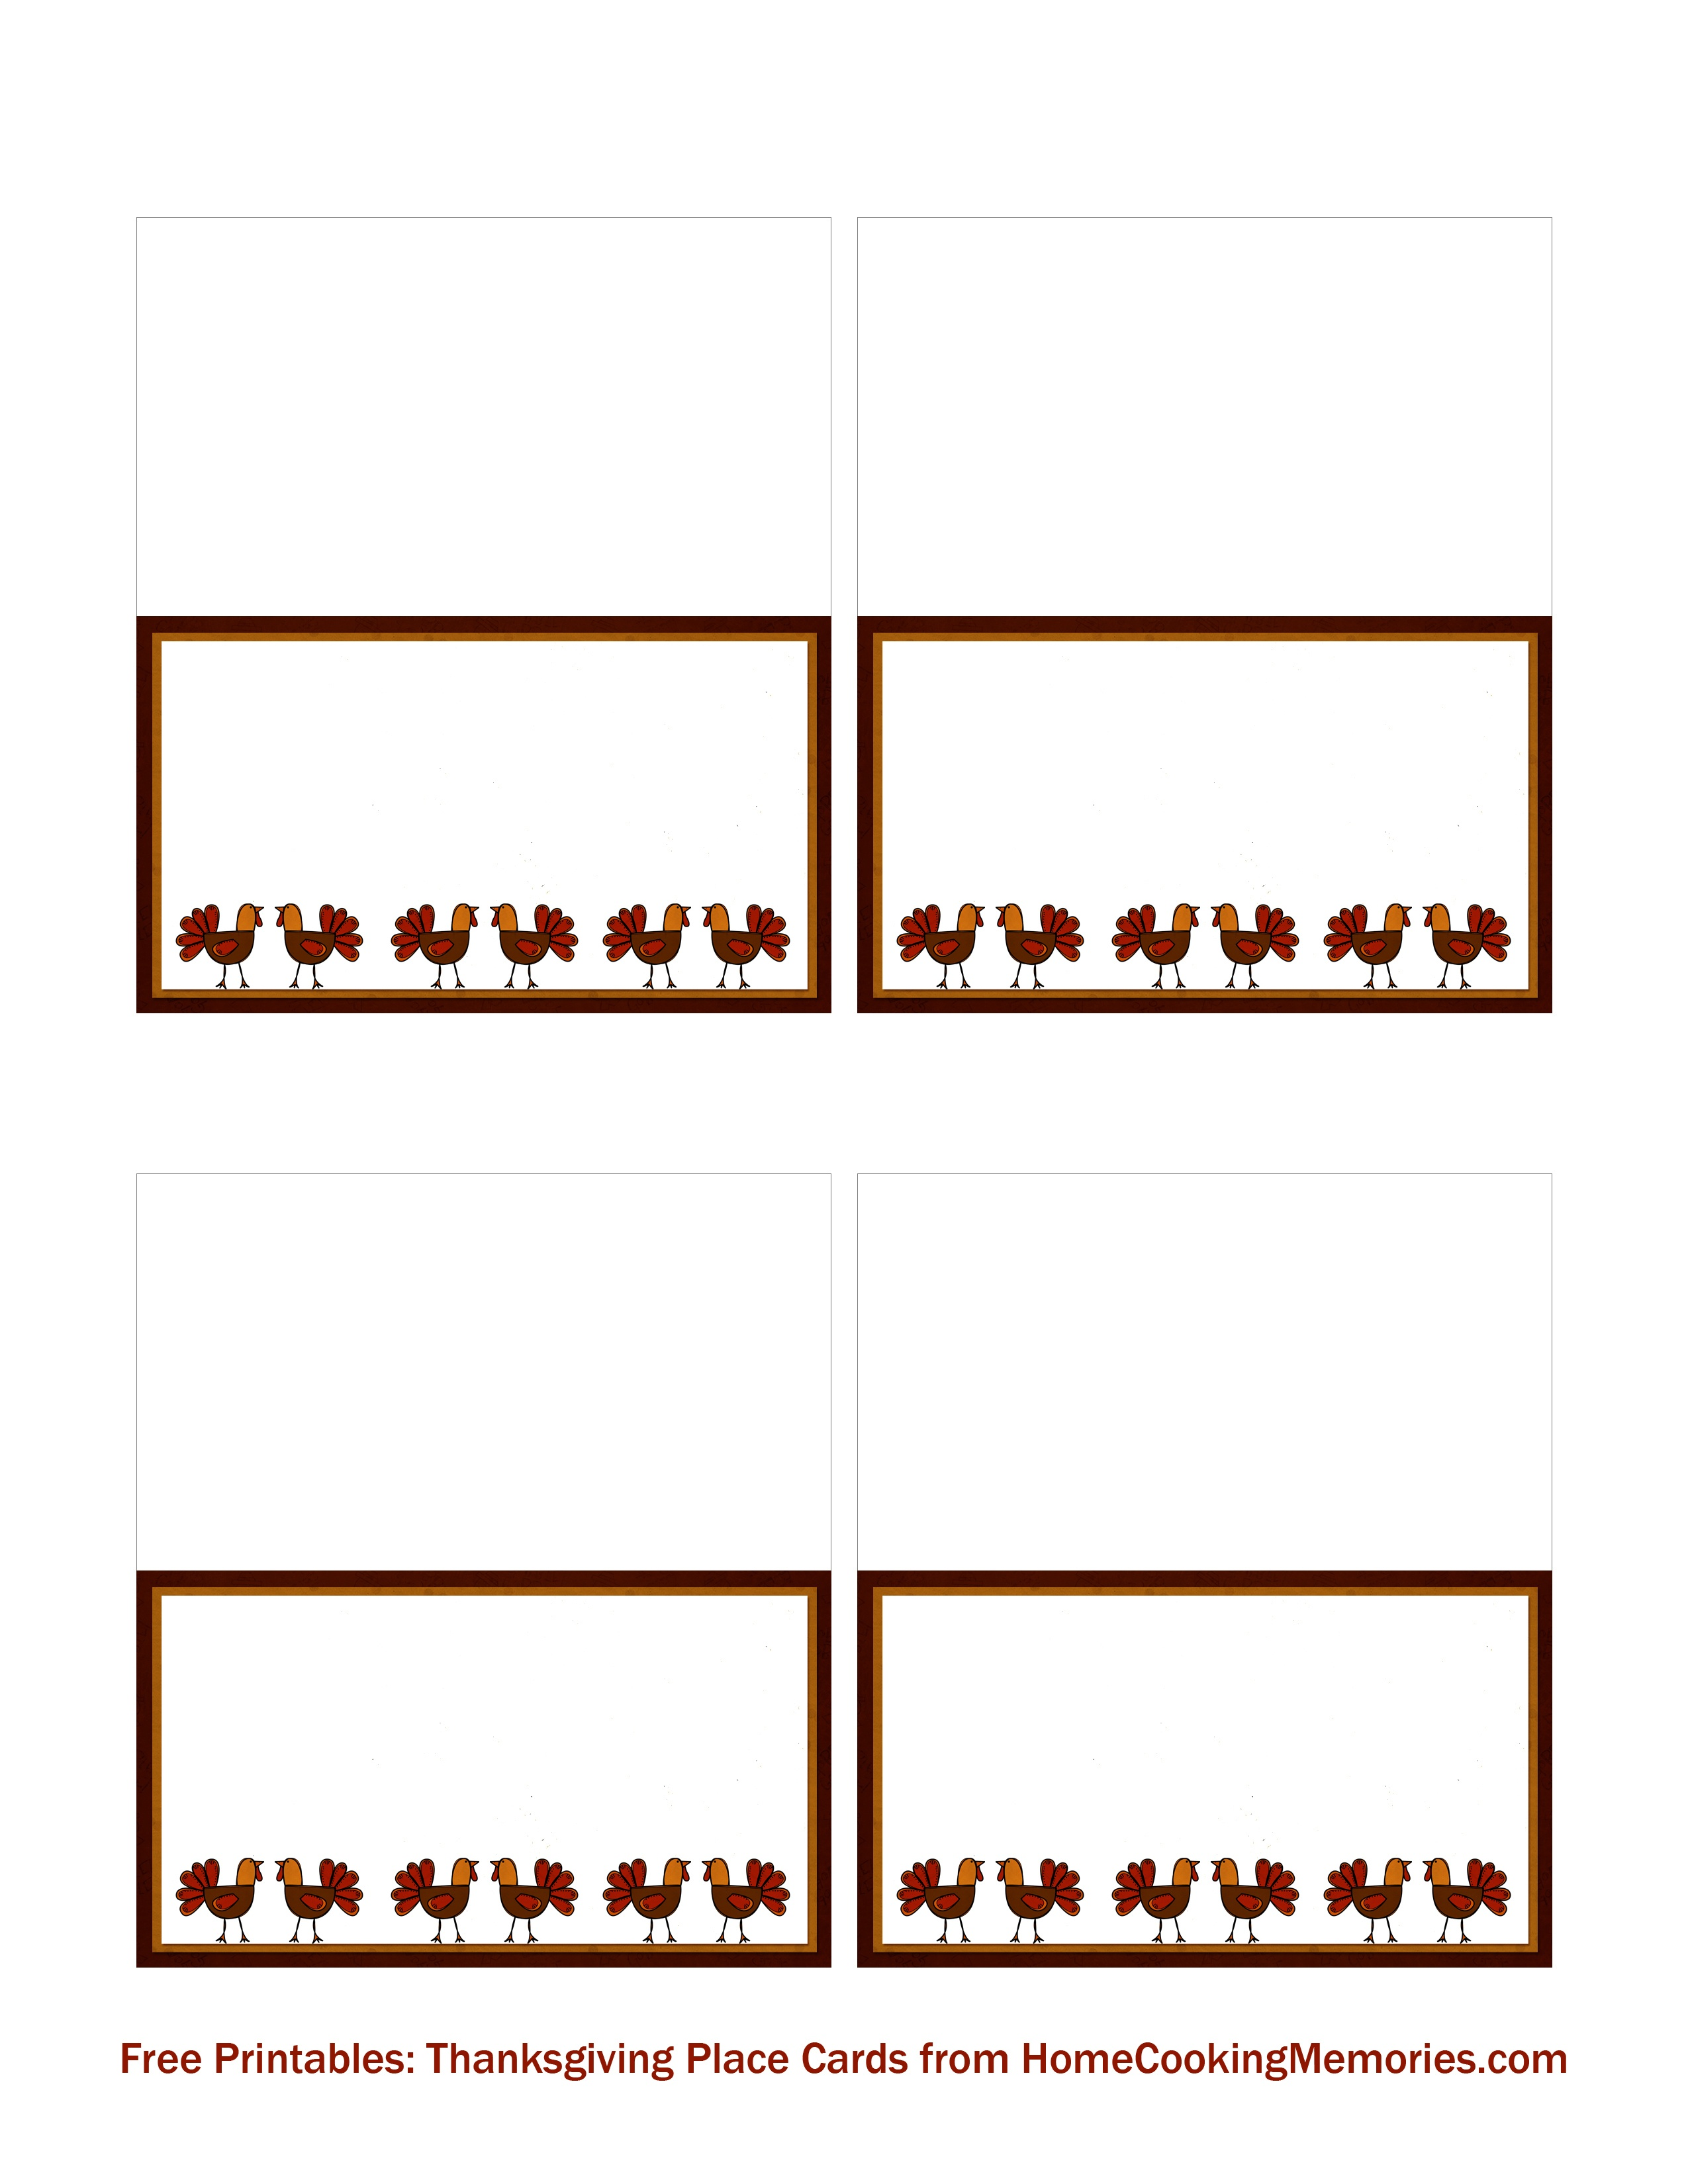 Free Printables: Thanksgiving Place Cards - Home Cooking Memories - Free Thanksgiving Printables Place Cards